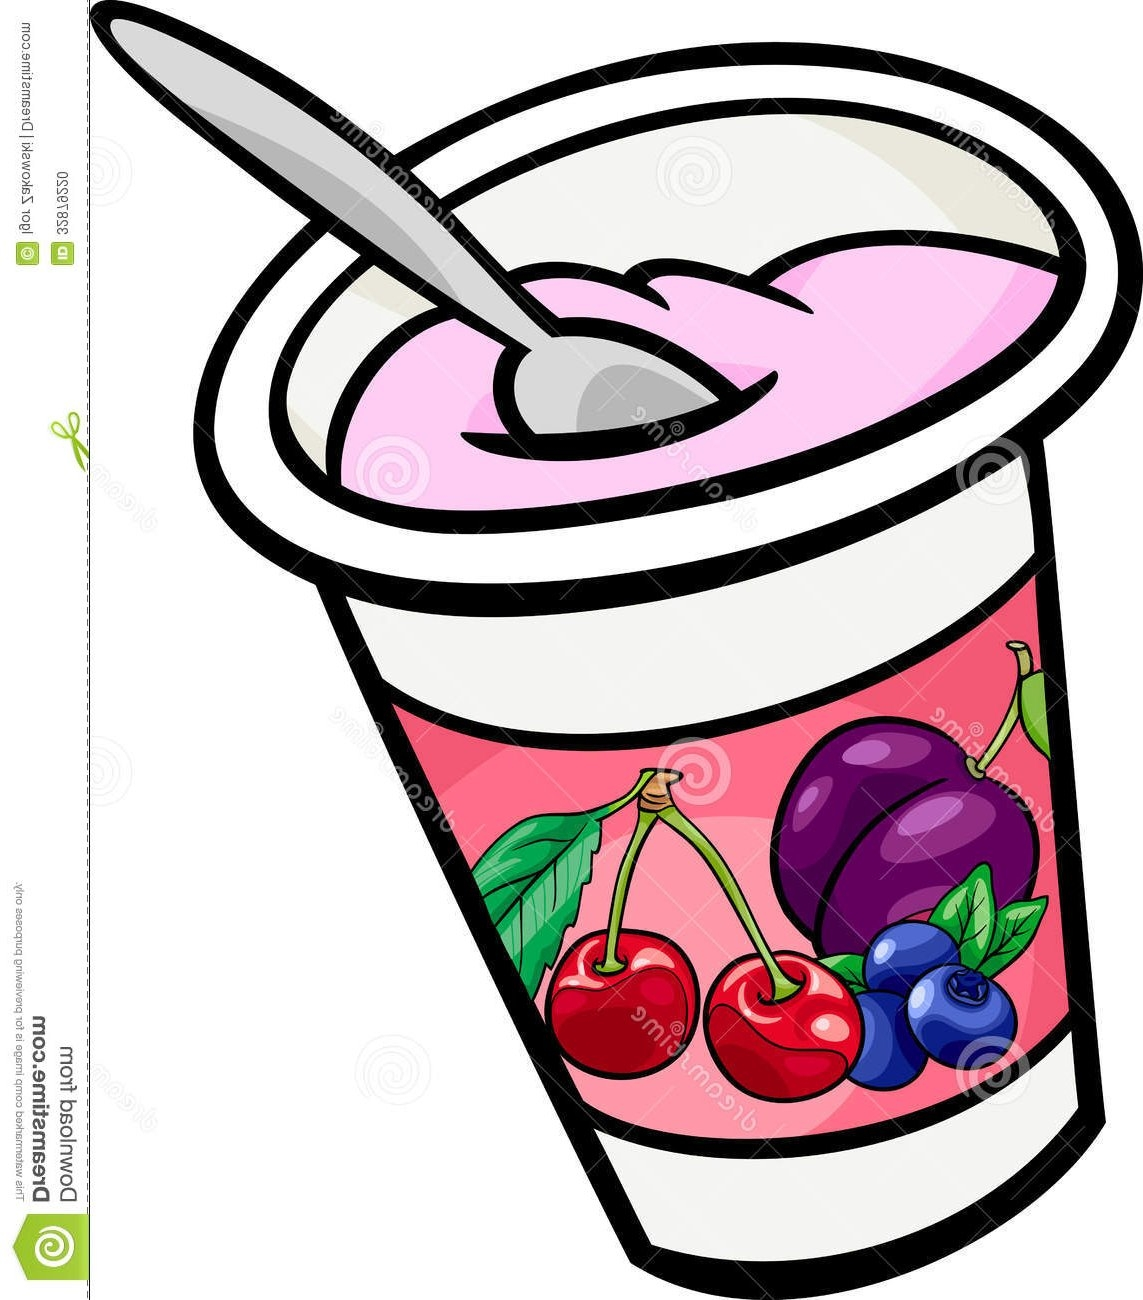 Yogurt clipart, Yogurt Transparent FREE for download on WebStockReview 2020